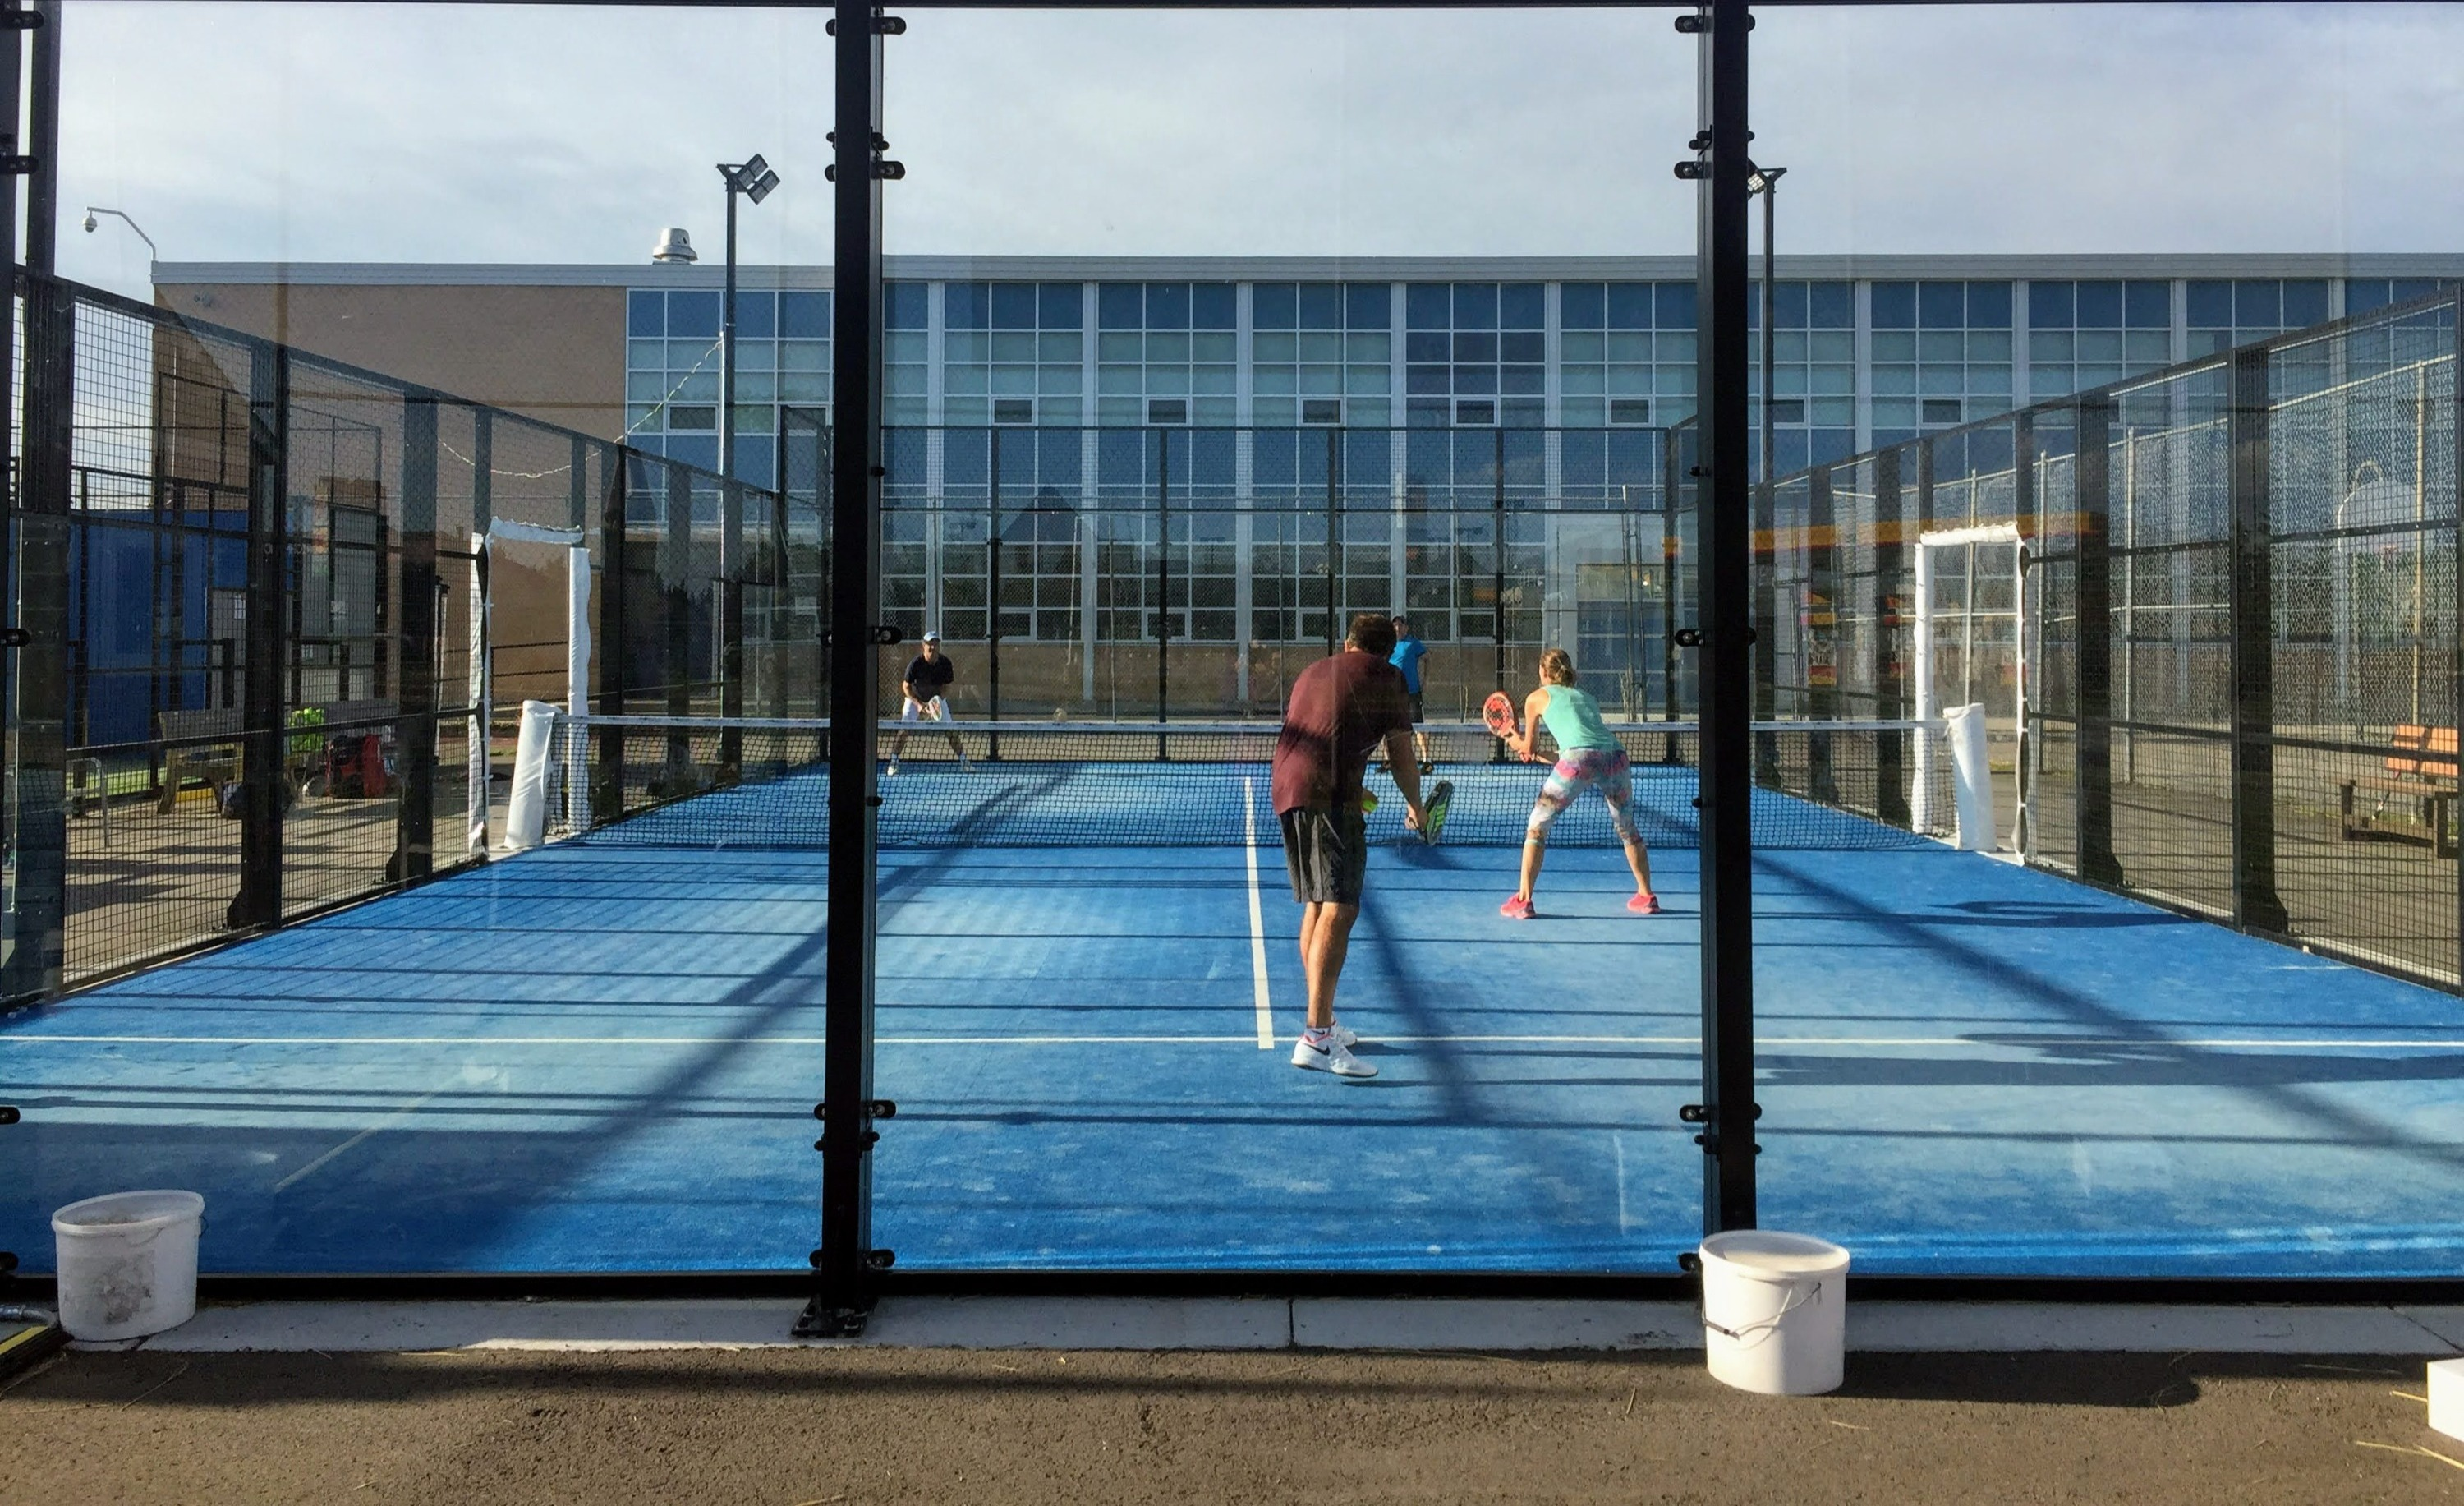 Full Court View of Padel Tennis Match